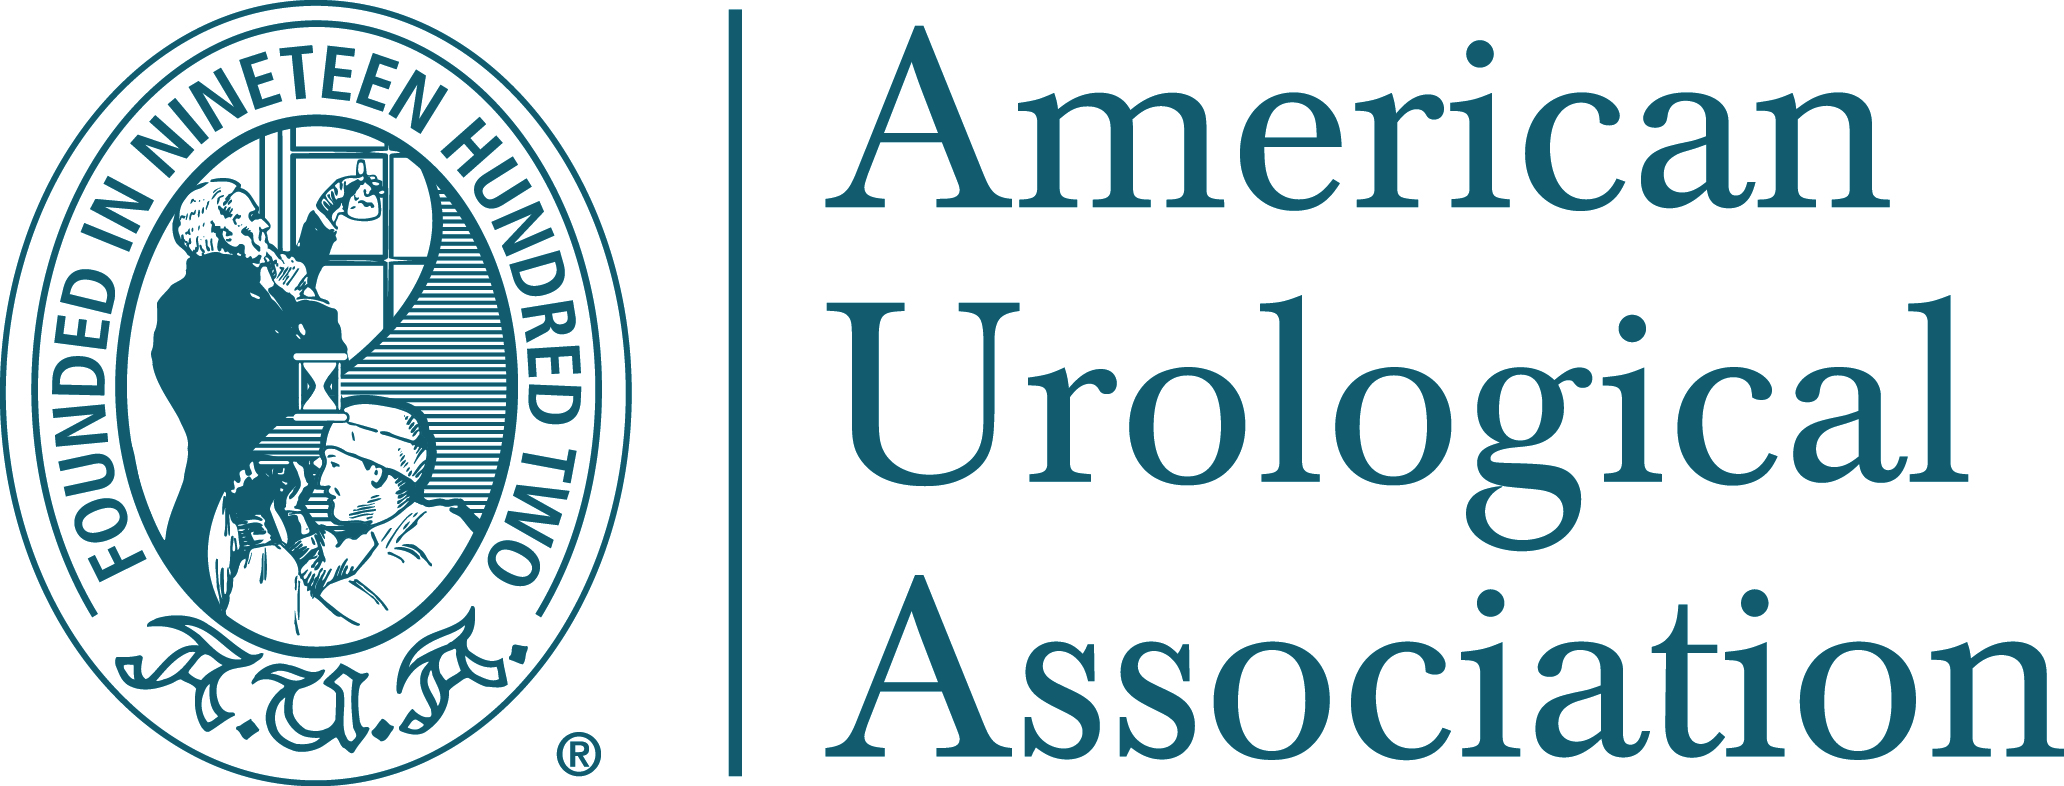 AUA 2020 - American Urological Association Annual Meeting